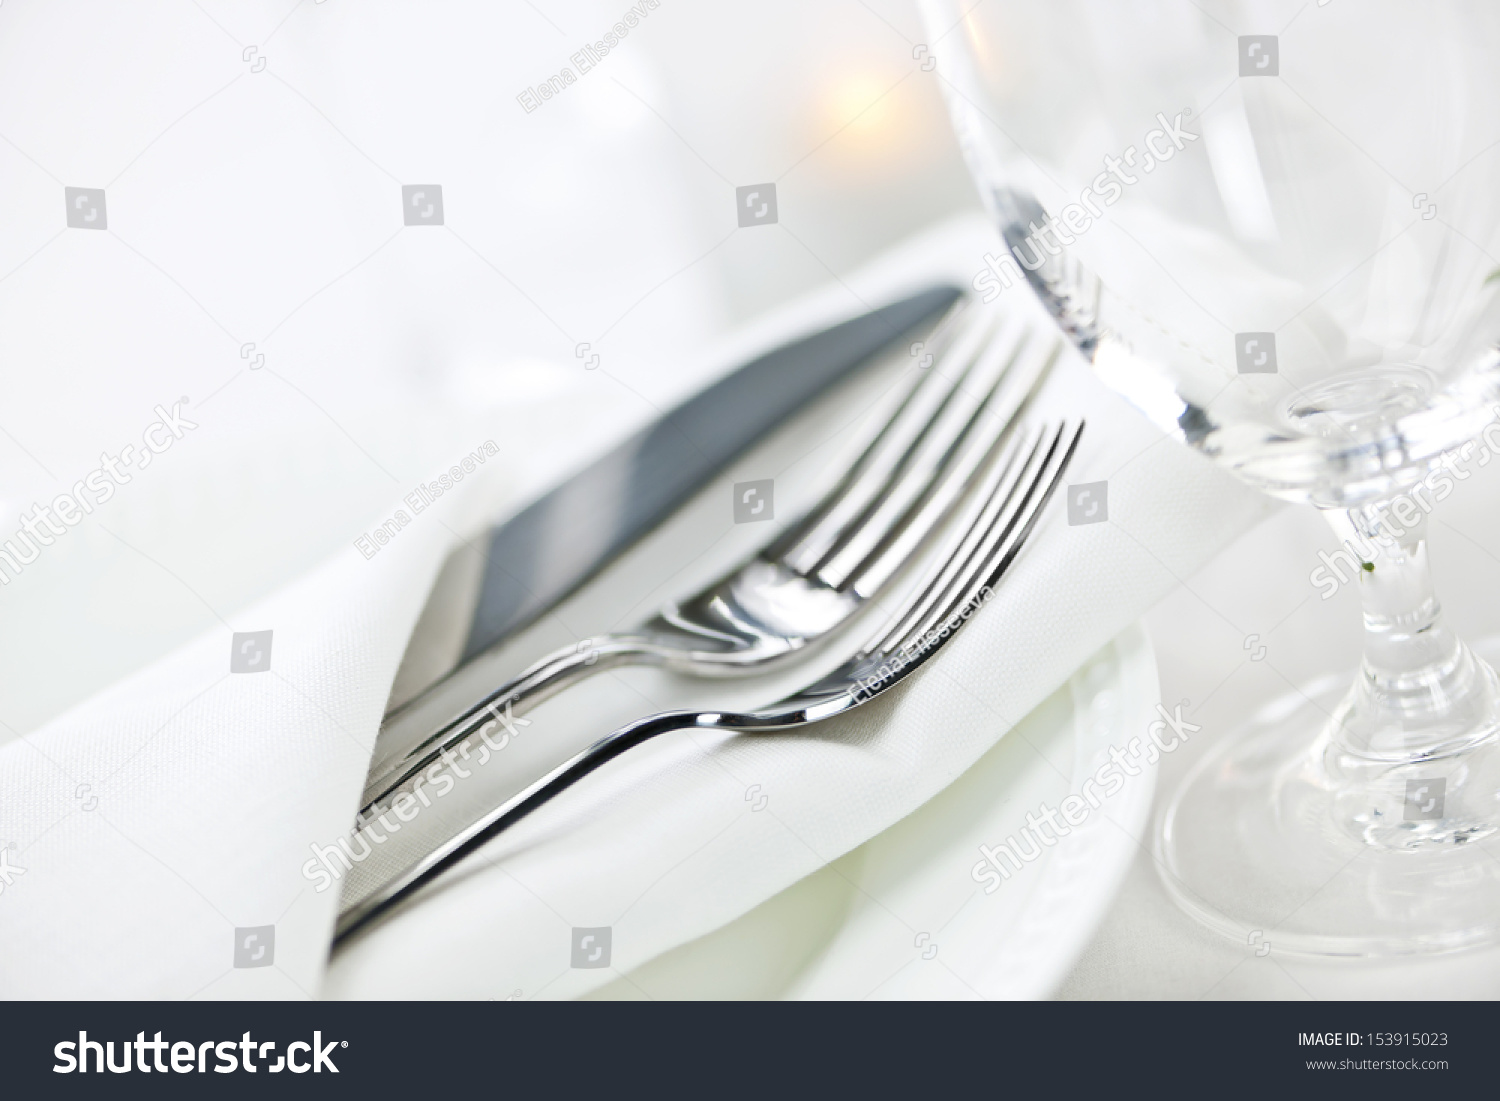 Table setting in a restaurant. Cutlery 86